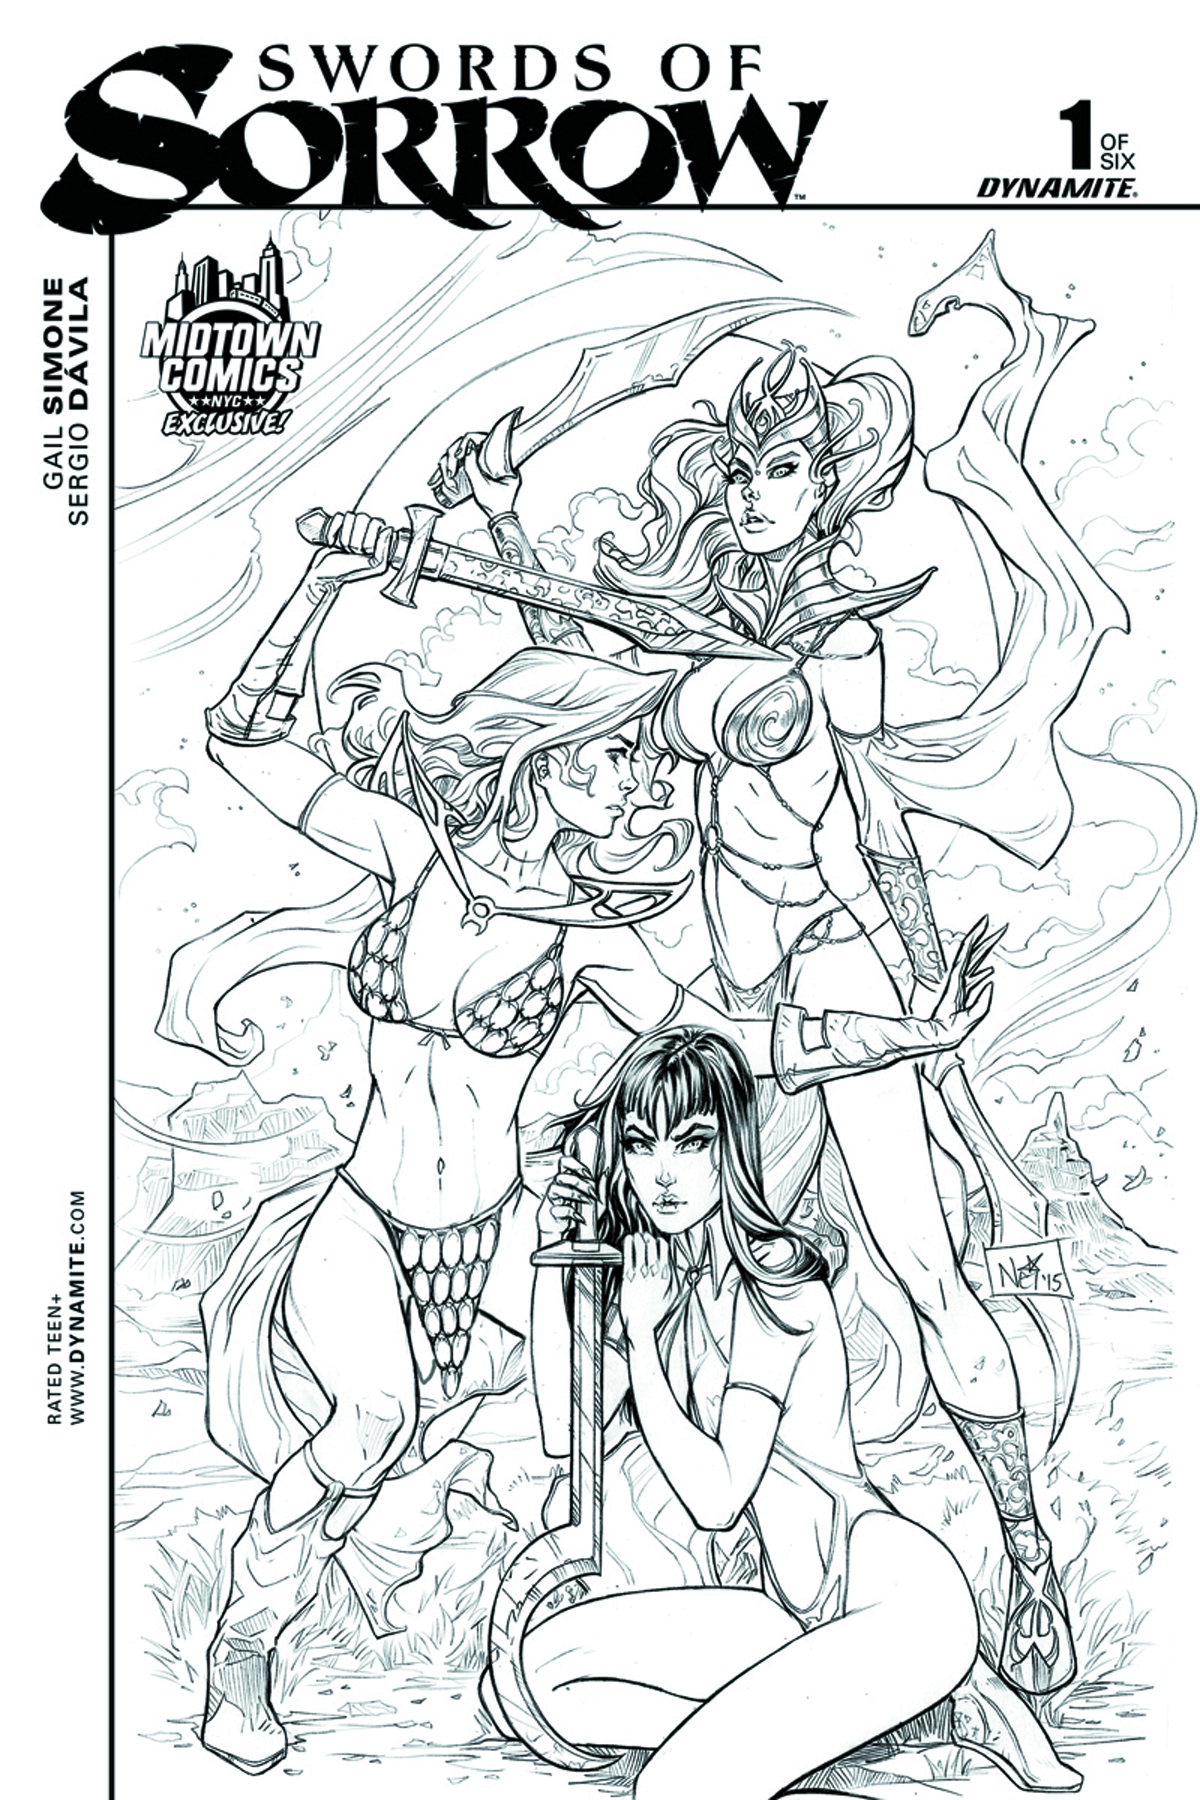 DF SWORDS OF SORROW #1 MIDTOWN EXC B&W RUFFINO